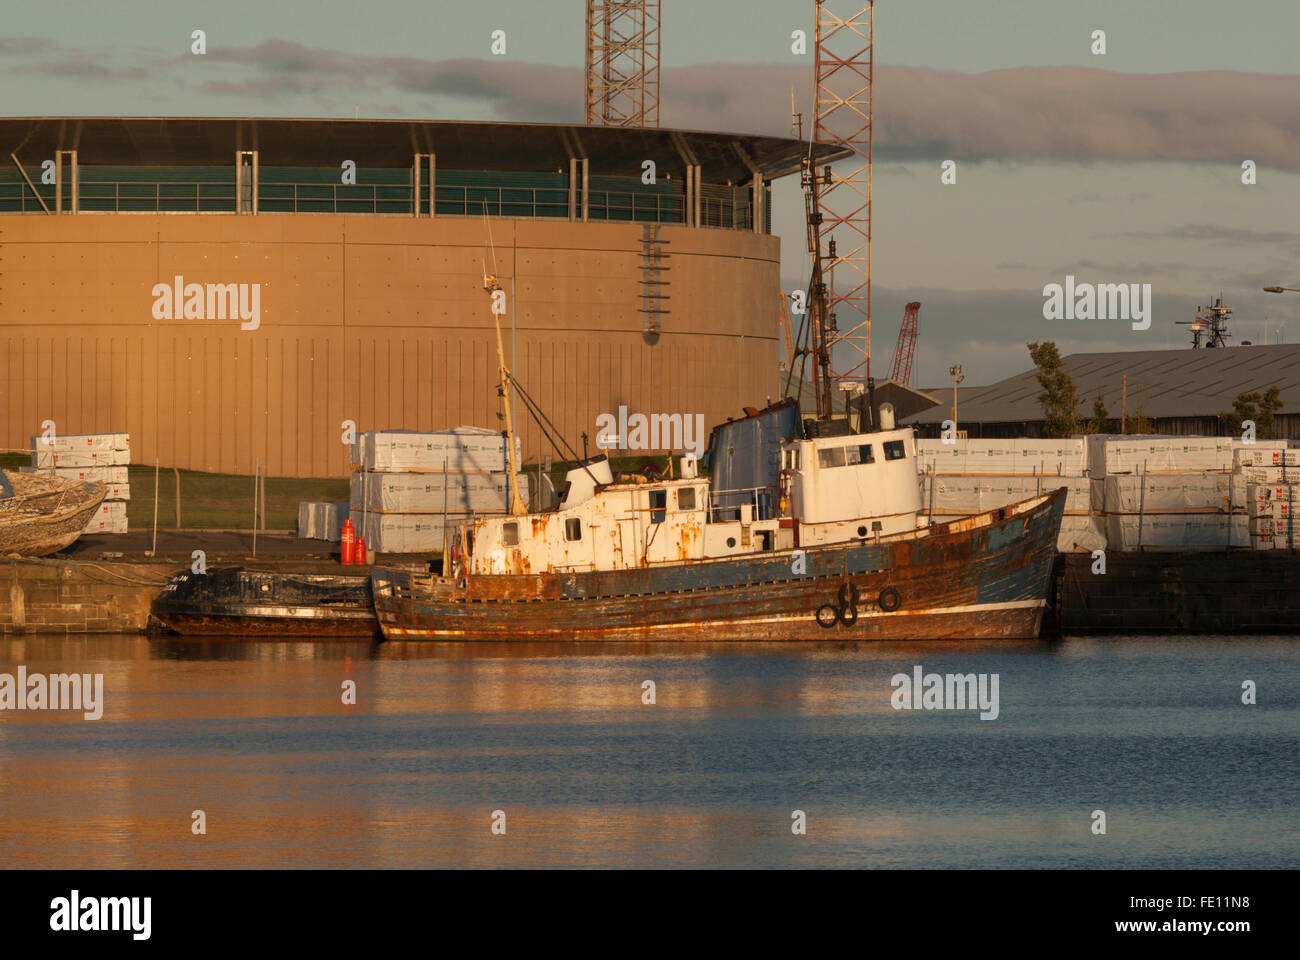 Rusting ship at sunset in Harbour docks, Dundee, Scotland, UK. - Stock Image